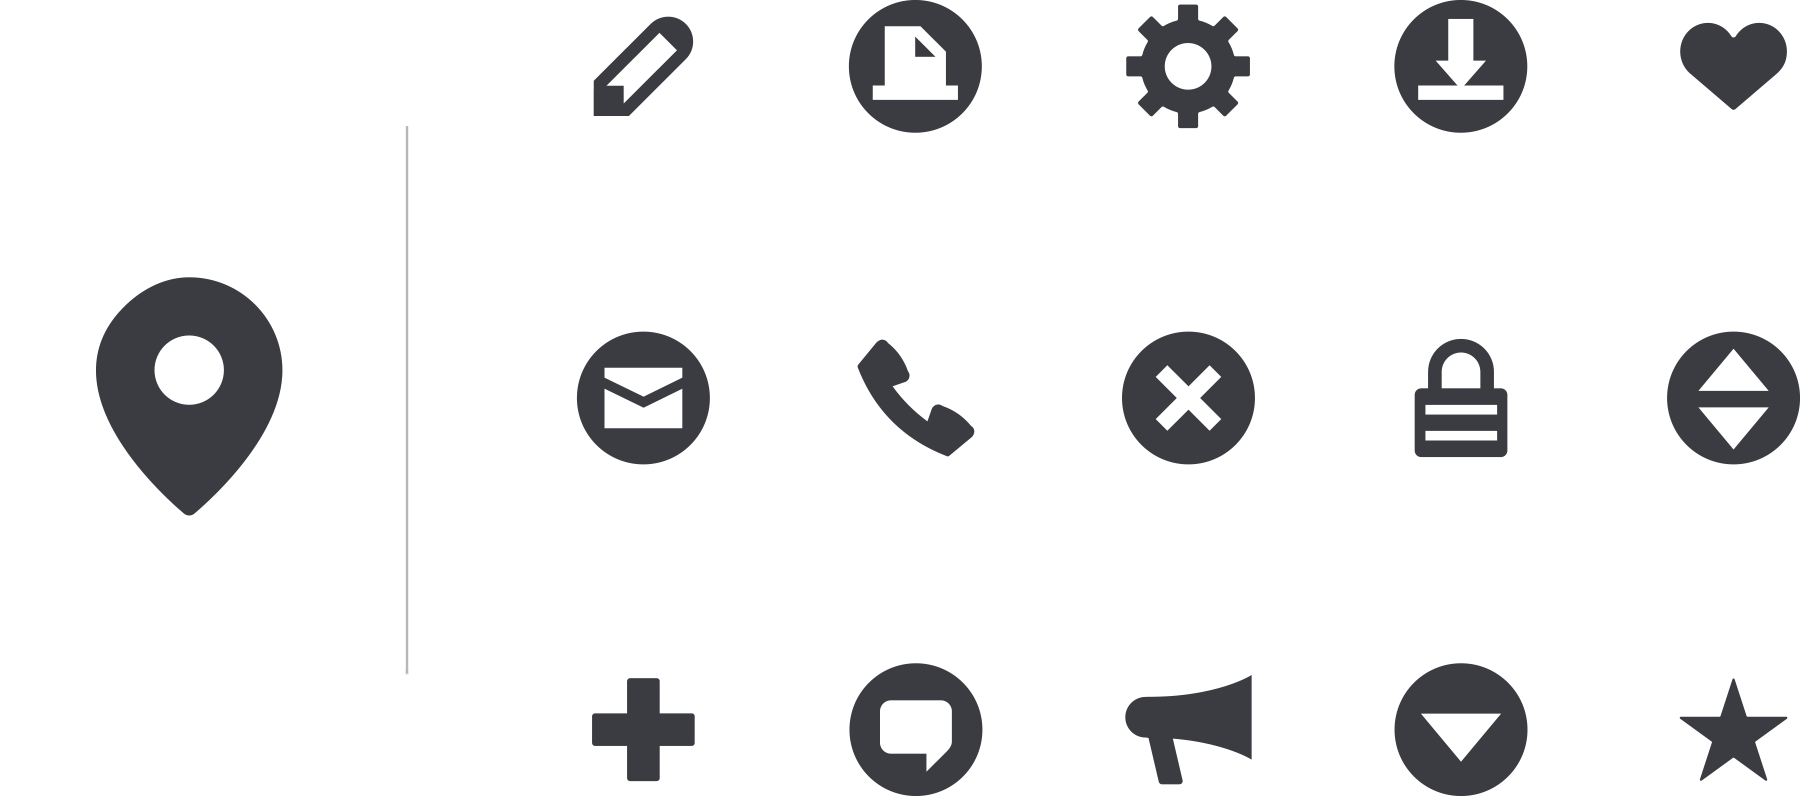 icons_1.png